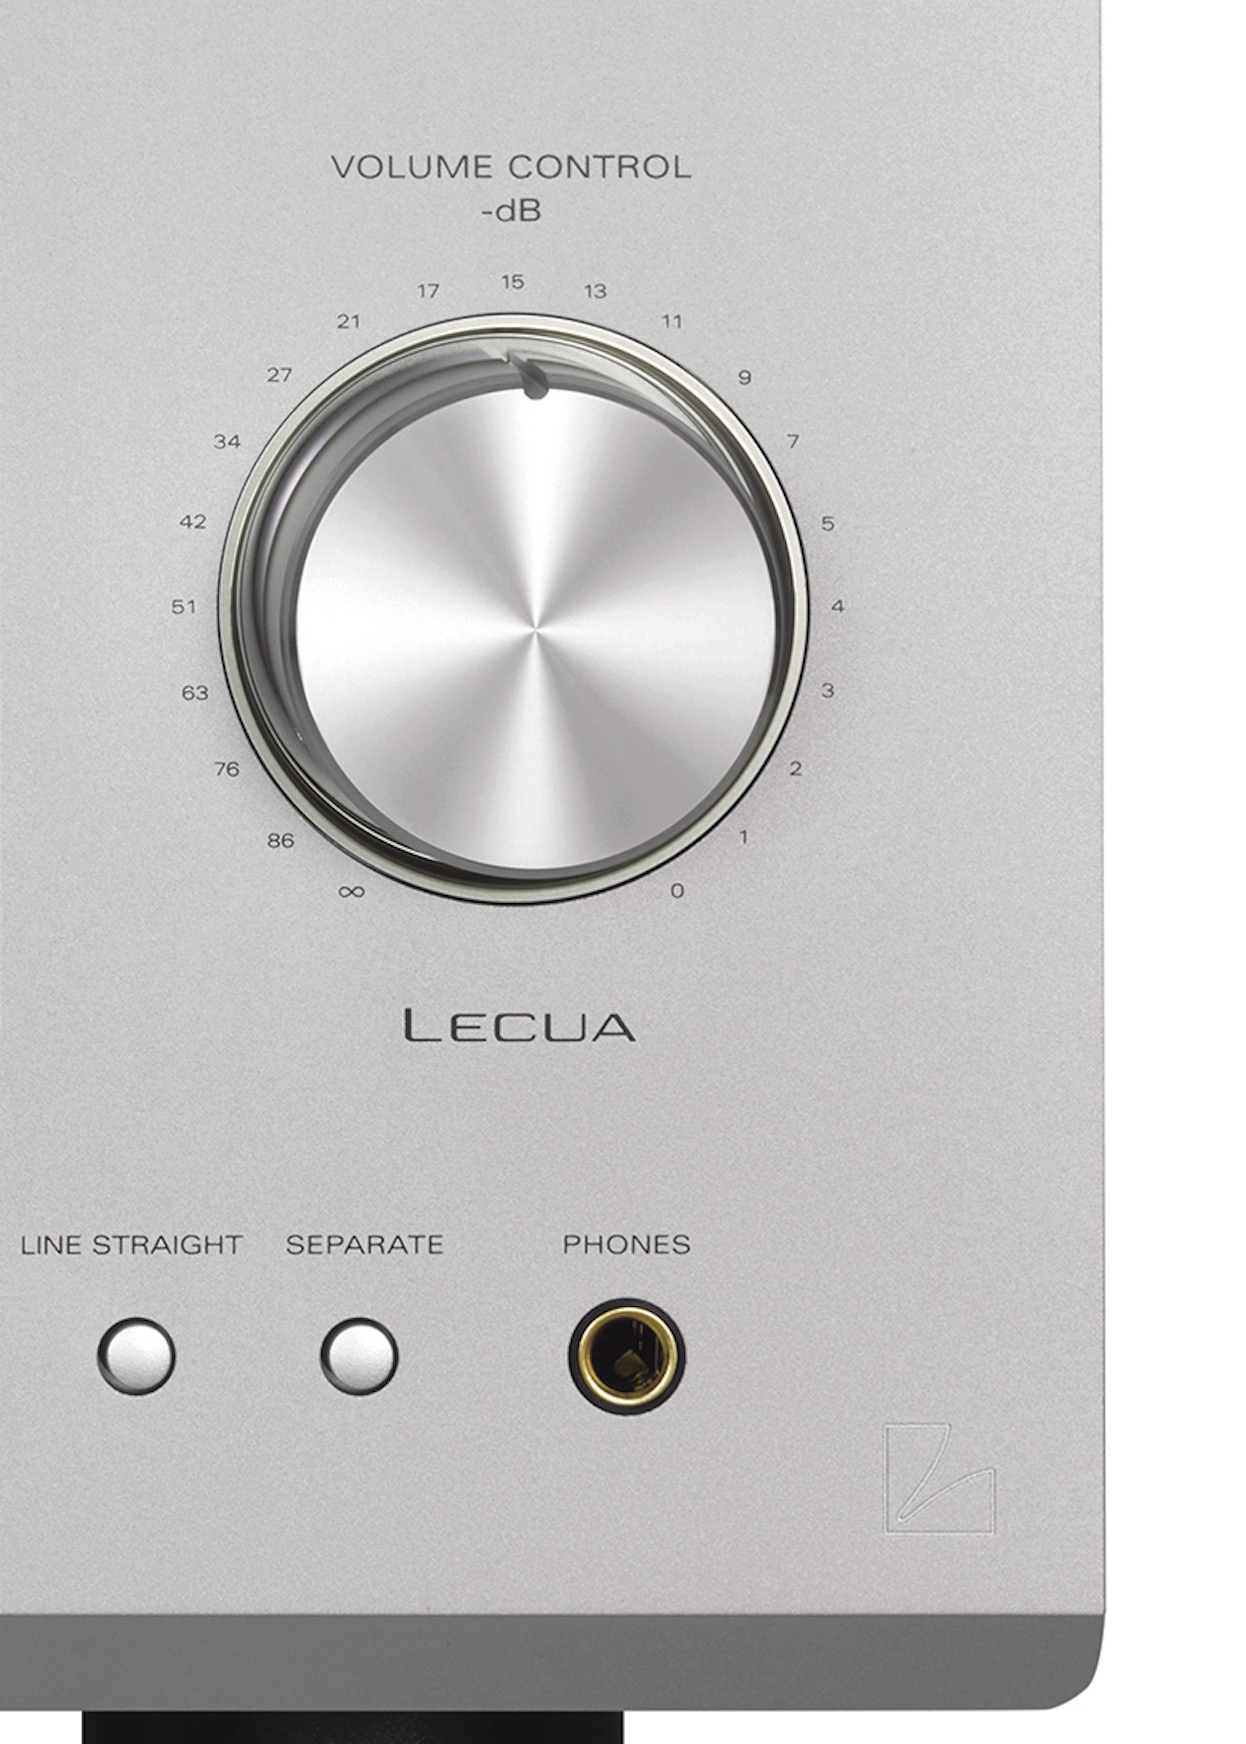 Luxman L-509X: Class AB Integrated Amplifier With Knobs On